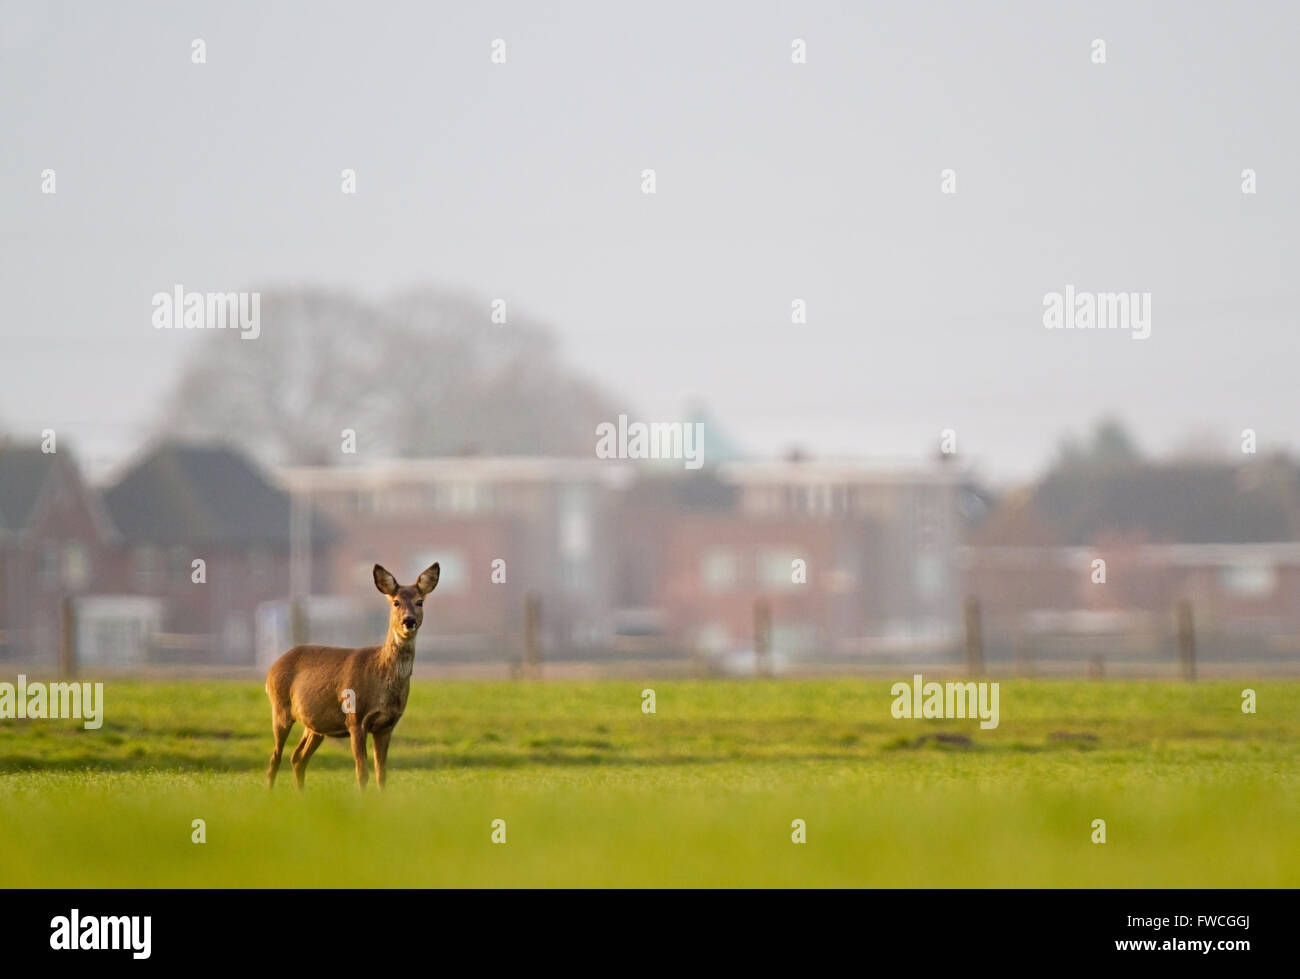 Urbanization: a pregnant Roe deer, in the background a suburb - Stock Image